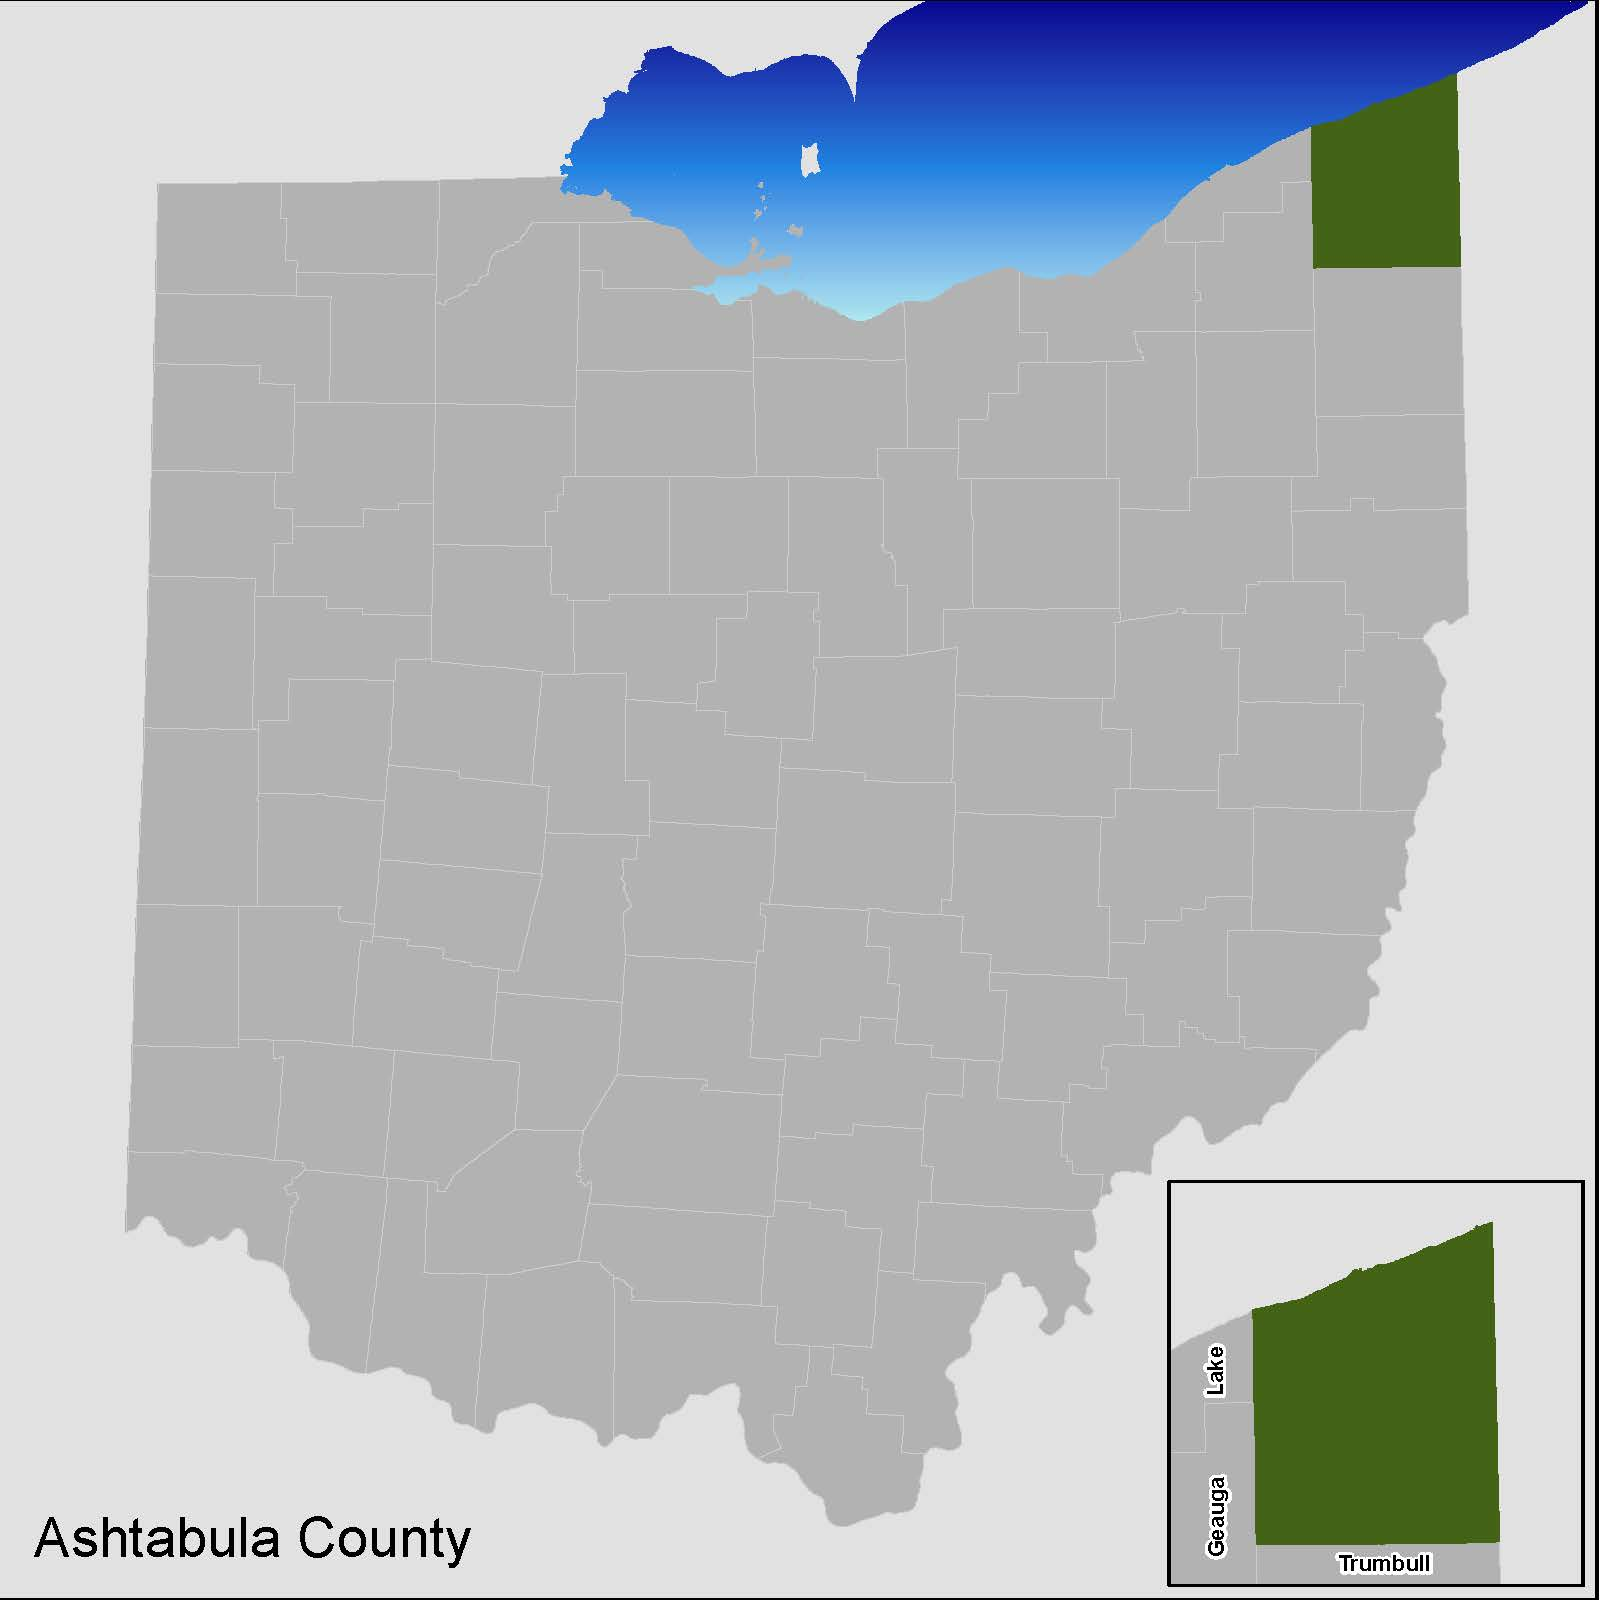 Ashtabula County – Western Reserve Land Conservancy on cuyahoga county, map of ne ohio, map of counties in ohio, map of groveport, map of ohio state university, lorain county, madison county, map of chesterland, map of niles, trumbull county, franklin county, map of 44030, map of avon, montgomery county, geauga county, map of parma, map of hubbard, map of warren, map of south point, adams county, knox county, map of eastlake, map of harbor, map of marion, map of eastern time zone, jefferson county, medina county, map of saybrook, summit county, monroe county, map of ohio map, map of canfield, lake county, map of grandview heights, washington county,